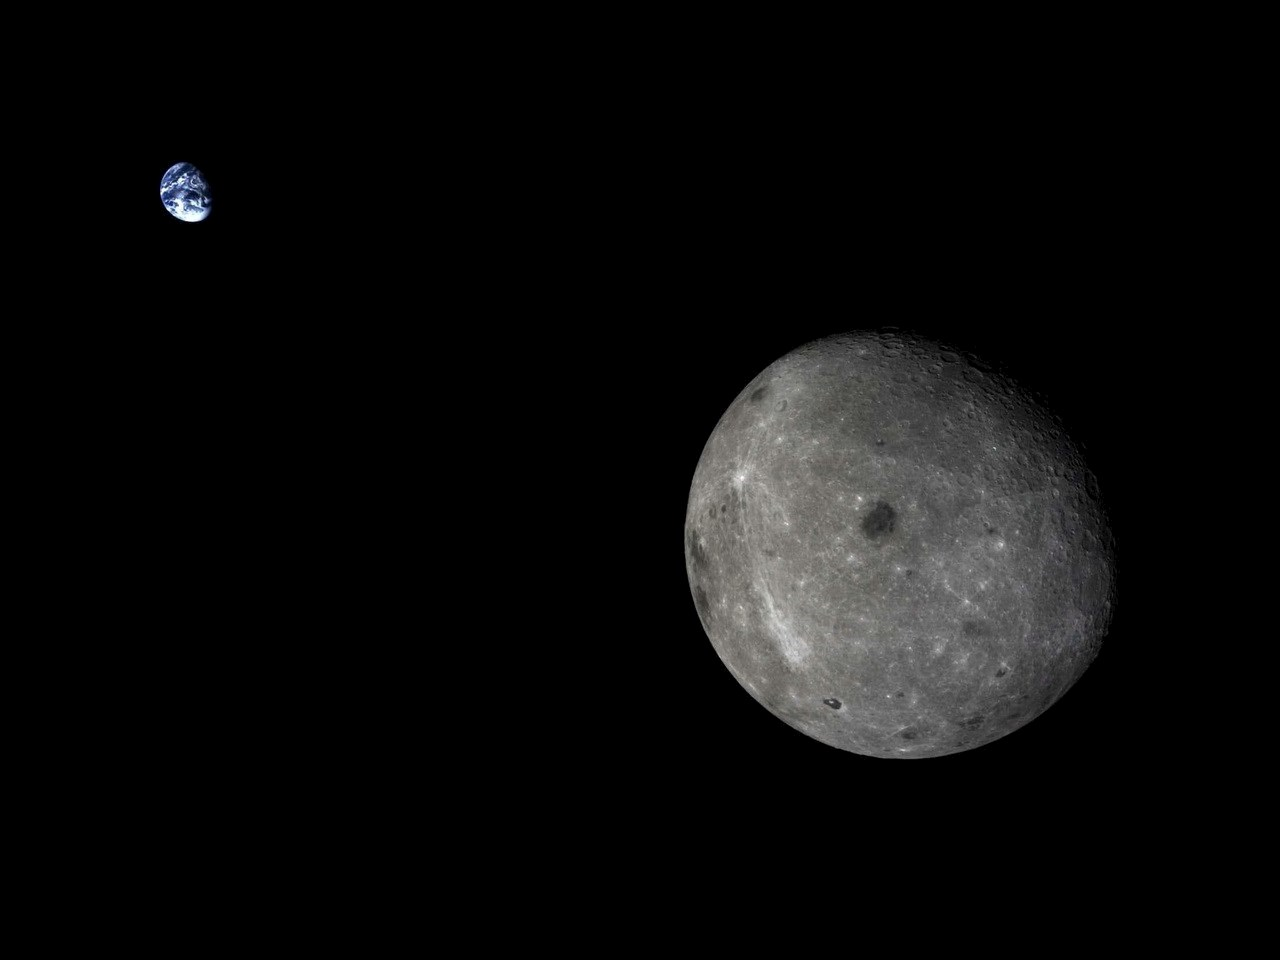 The Moon and distant Earth